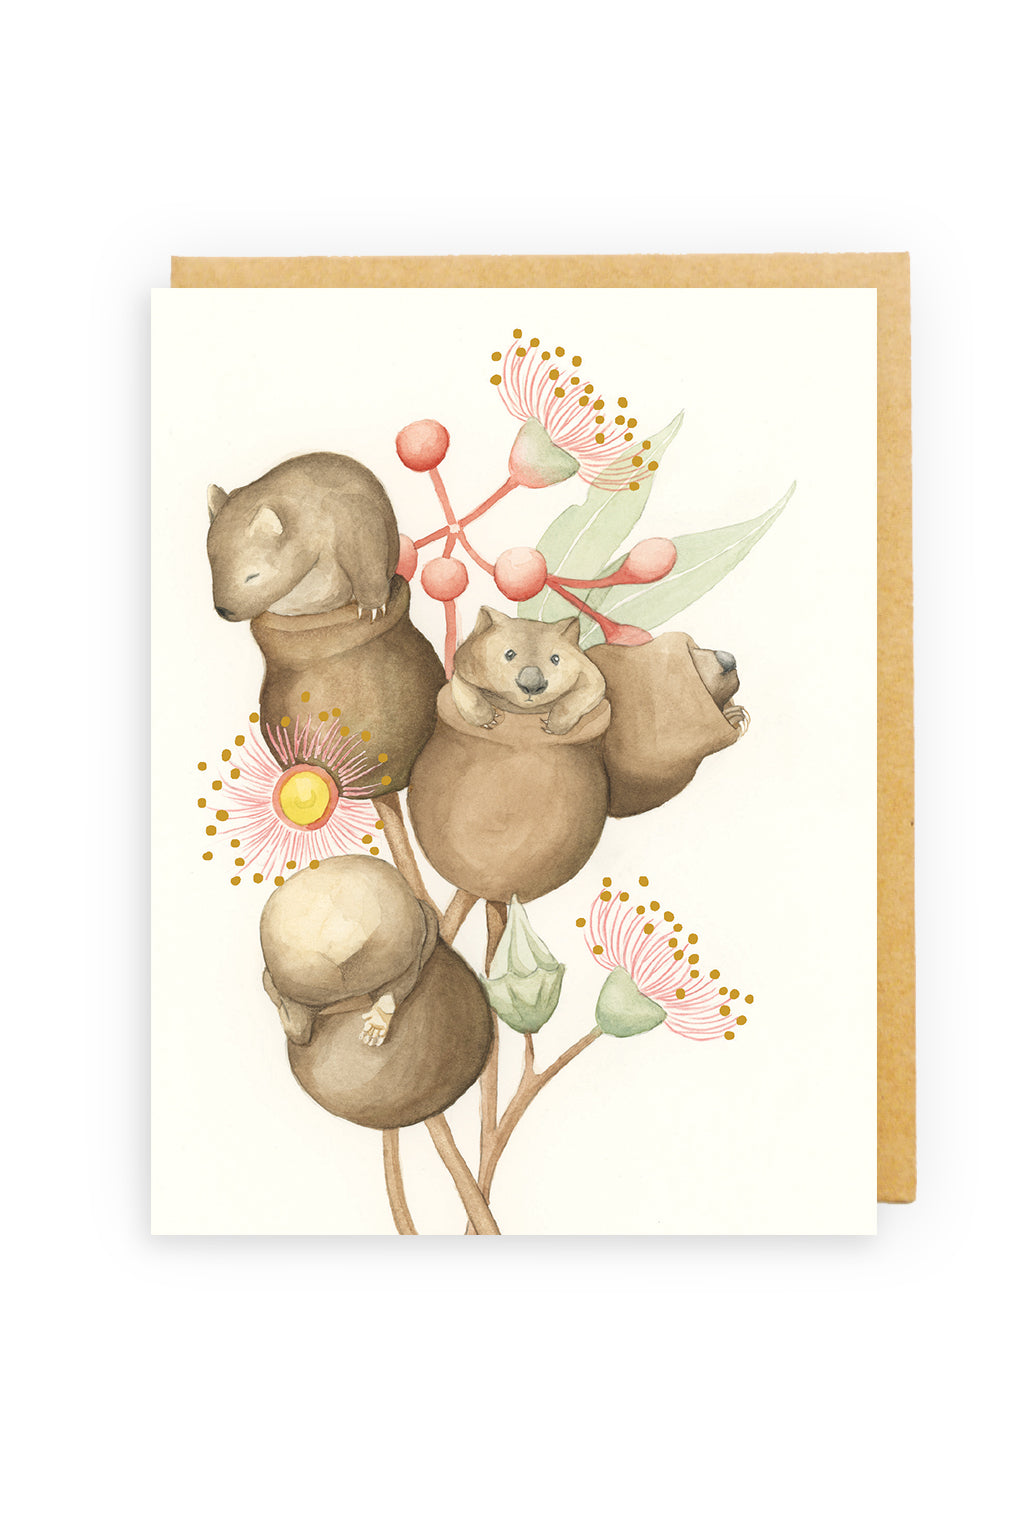 Squirrel Design Studio-Womnut GOLD FOIL  - Greeting Card-Mott and Mulberry